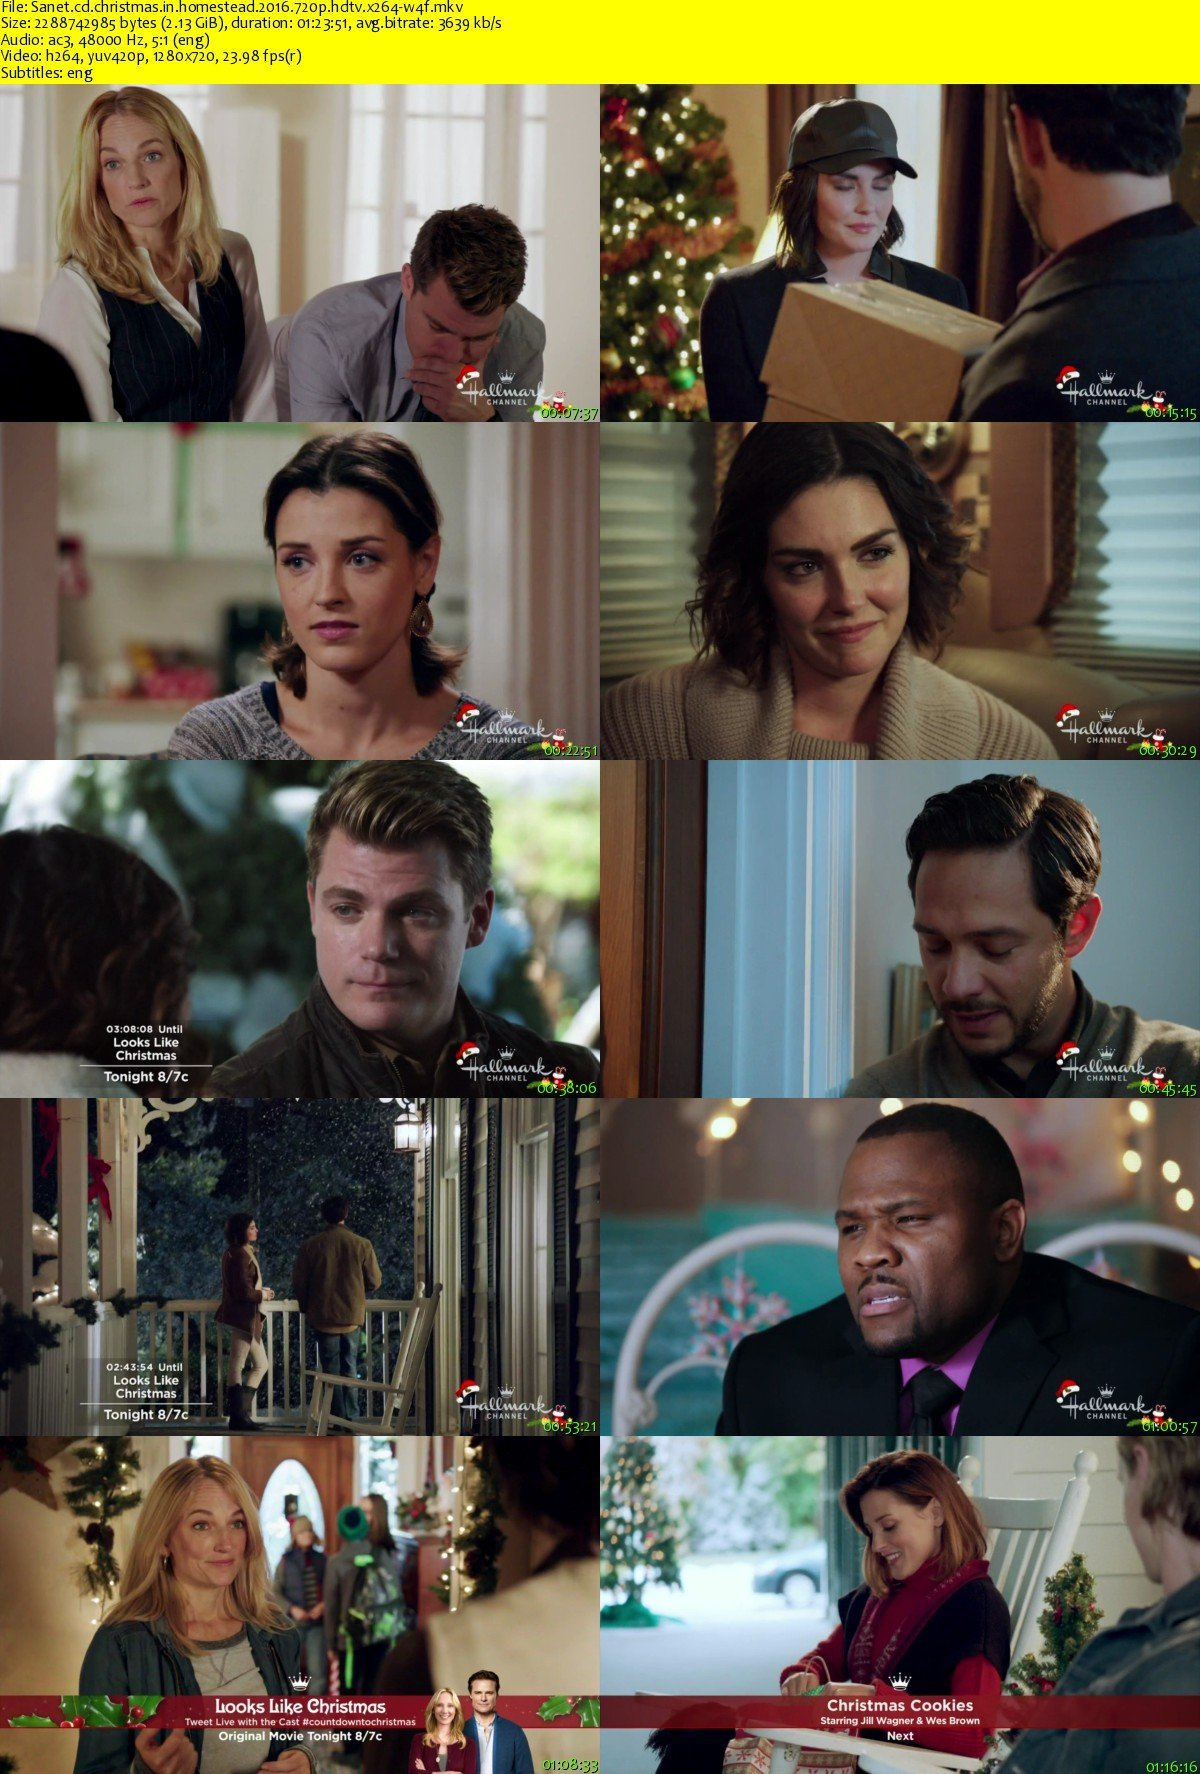 Christmas In Homestead.Download Christmas In Homestead 2016 720p Hdtv X264 W4f